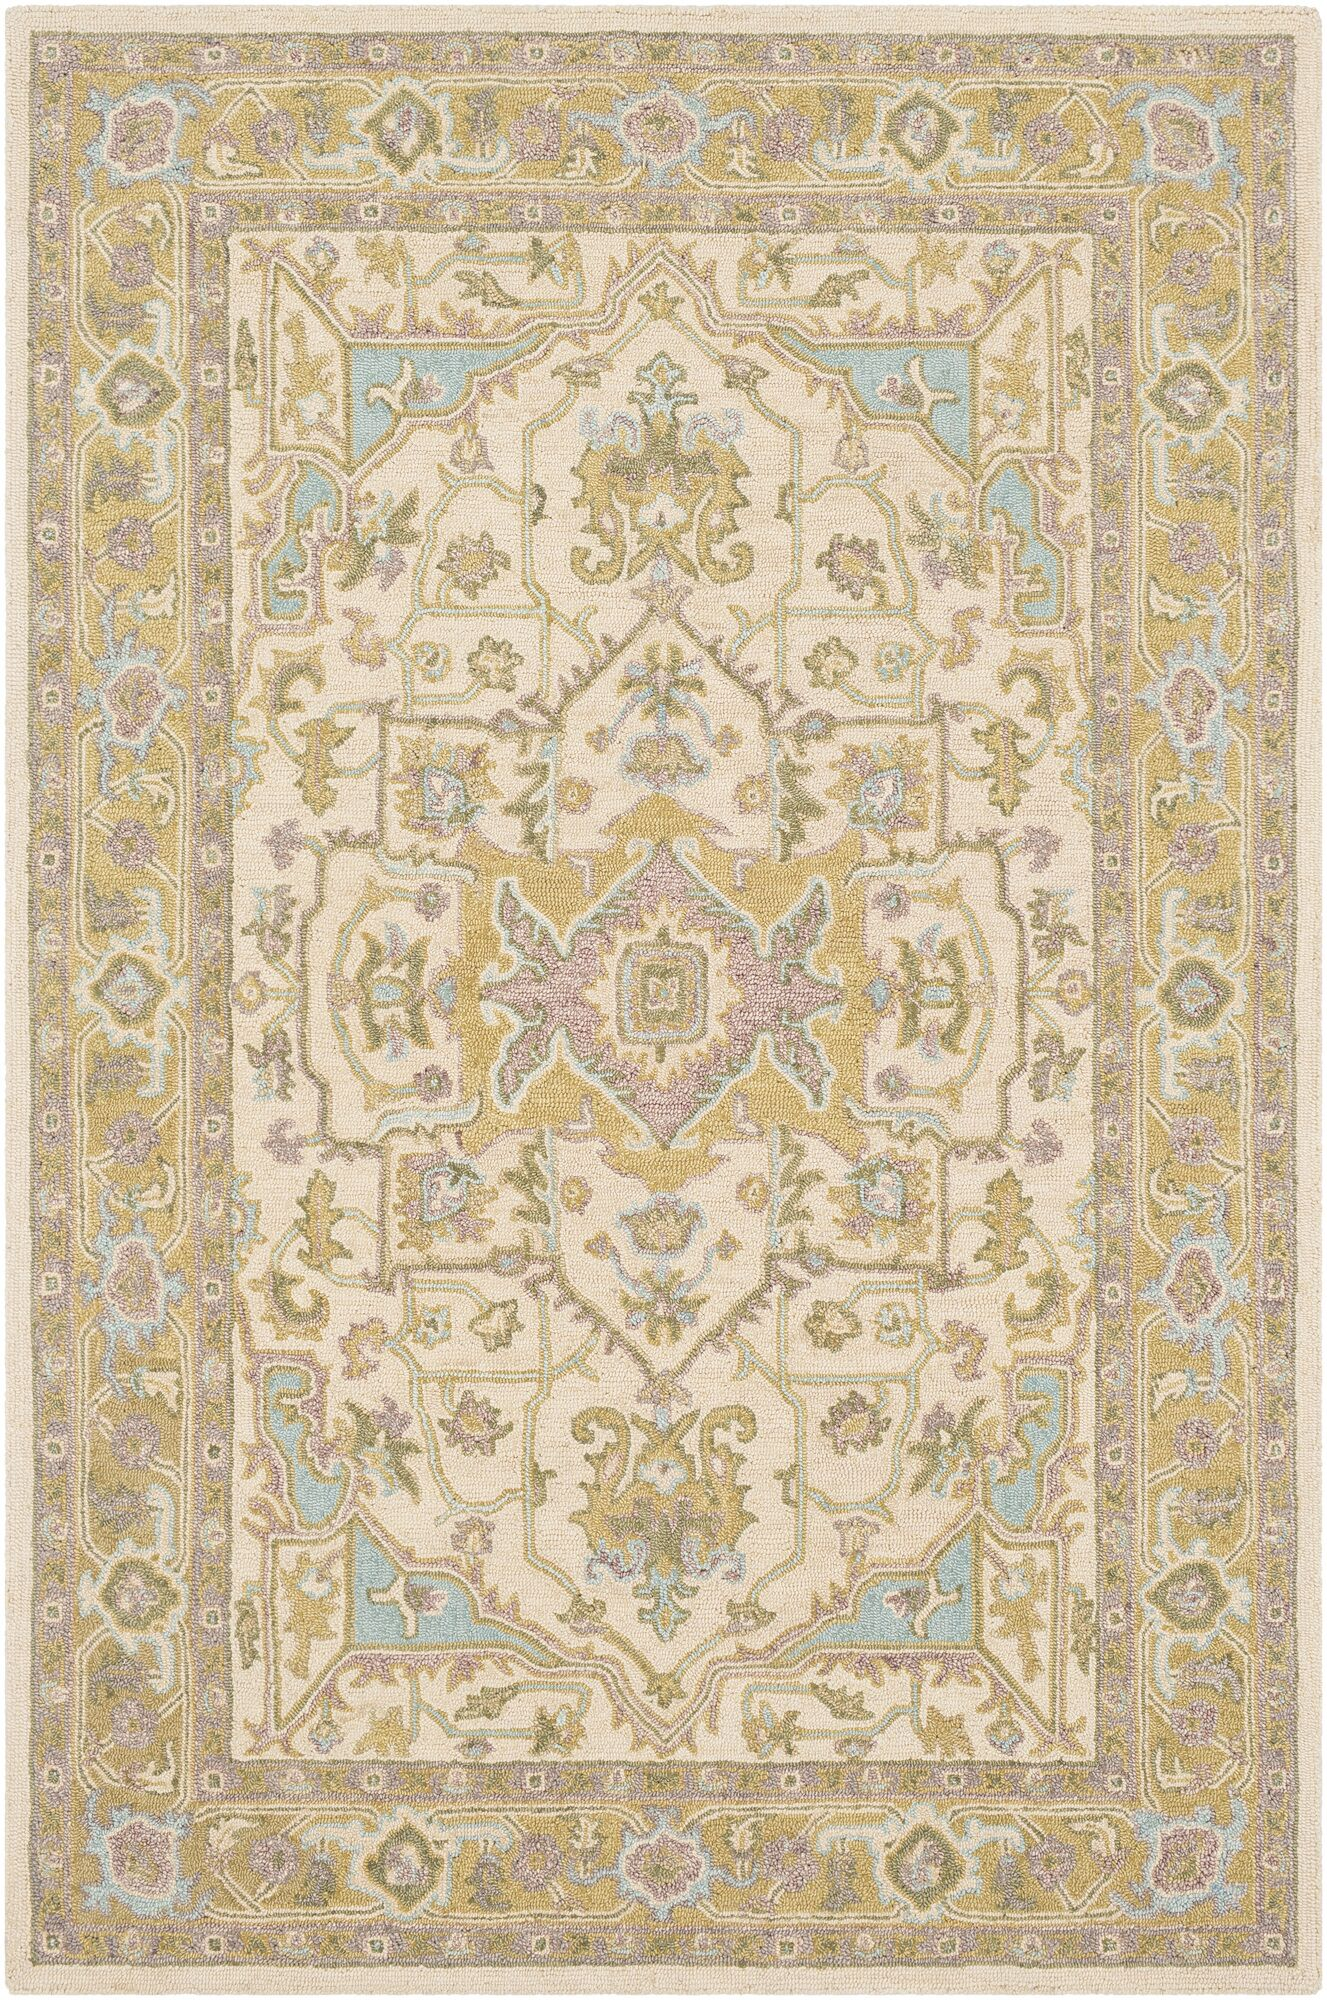 Greater Taree Hand Hooked Wool Olive/Butter Area Rug Rug Size: Rectangle 5' x 7'6